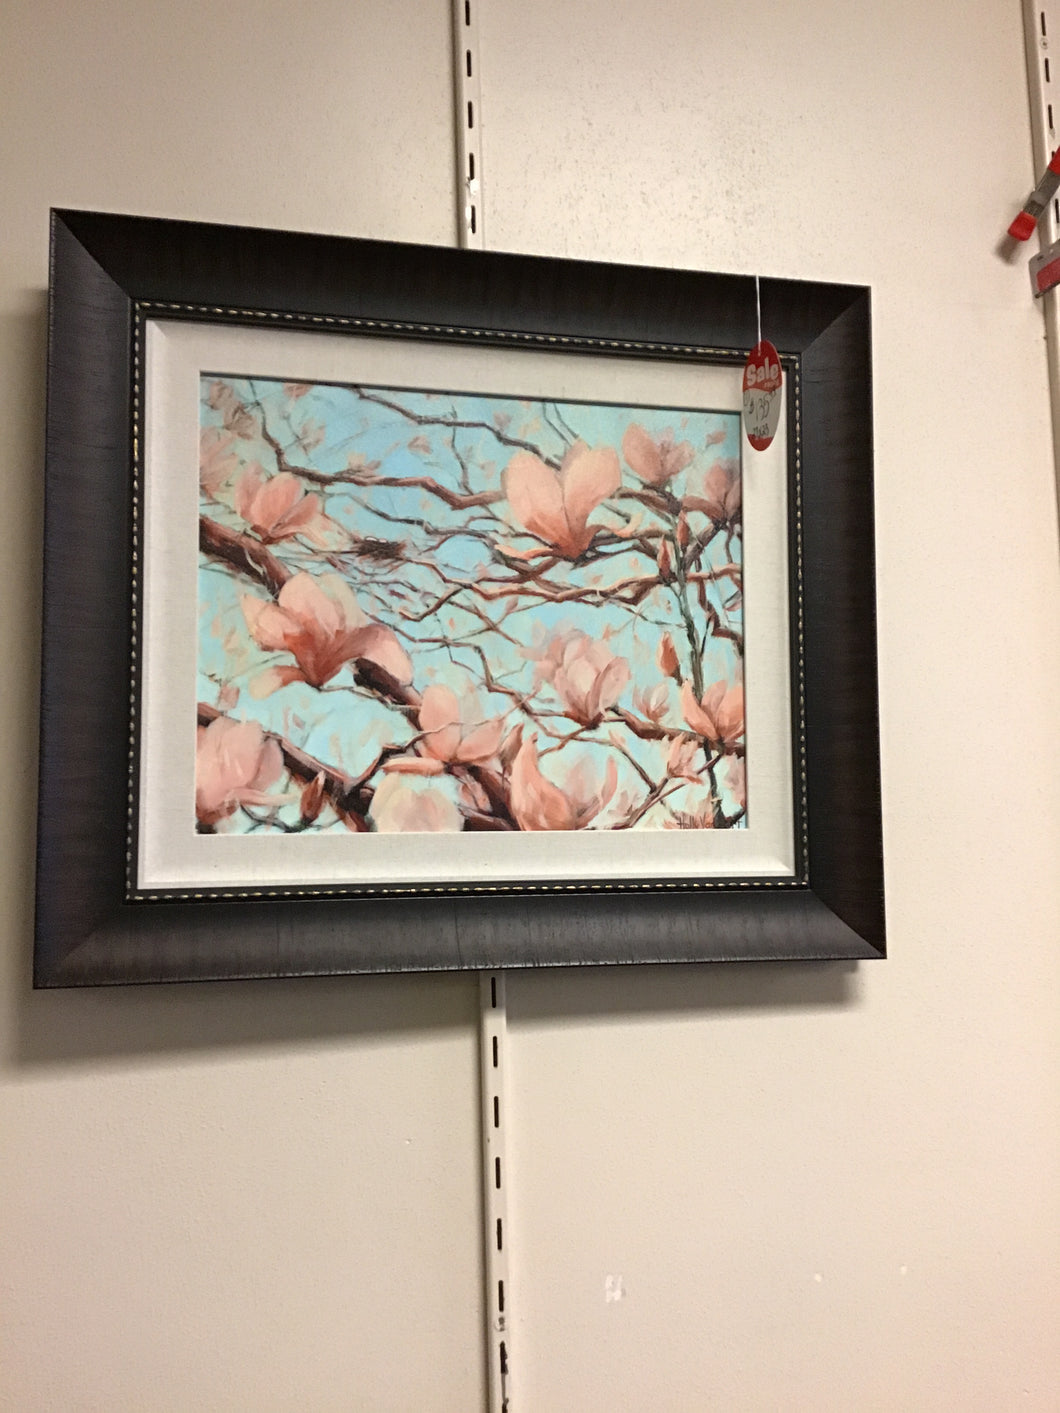 NEST AND MAGNOLIAS by Midwest Art